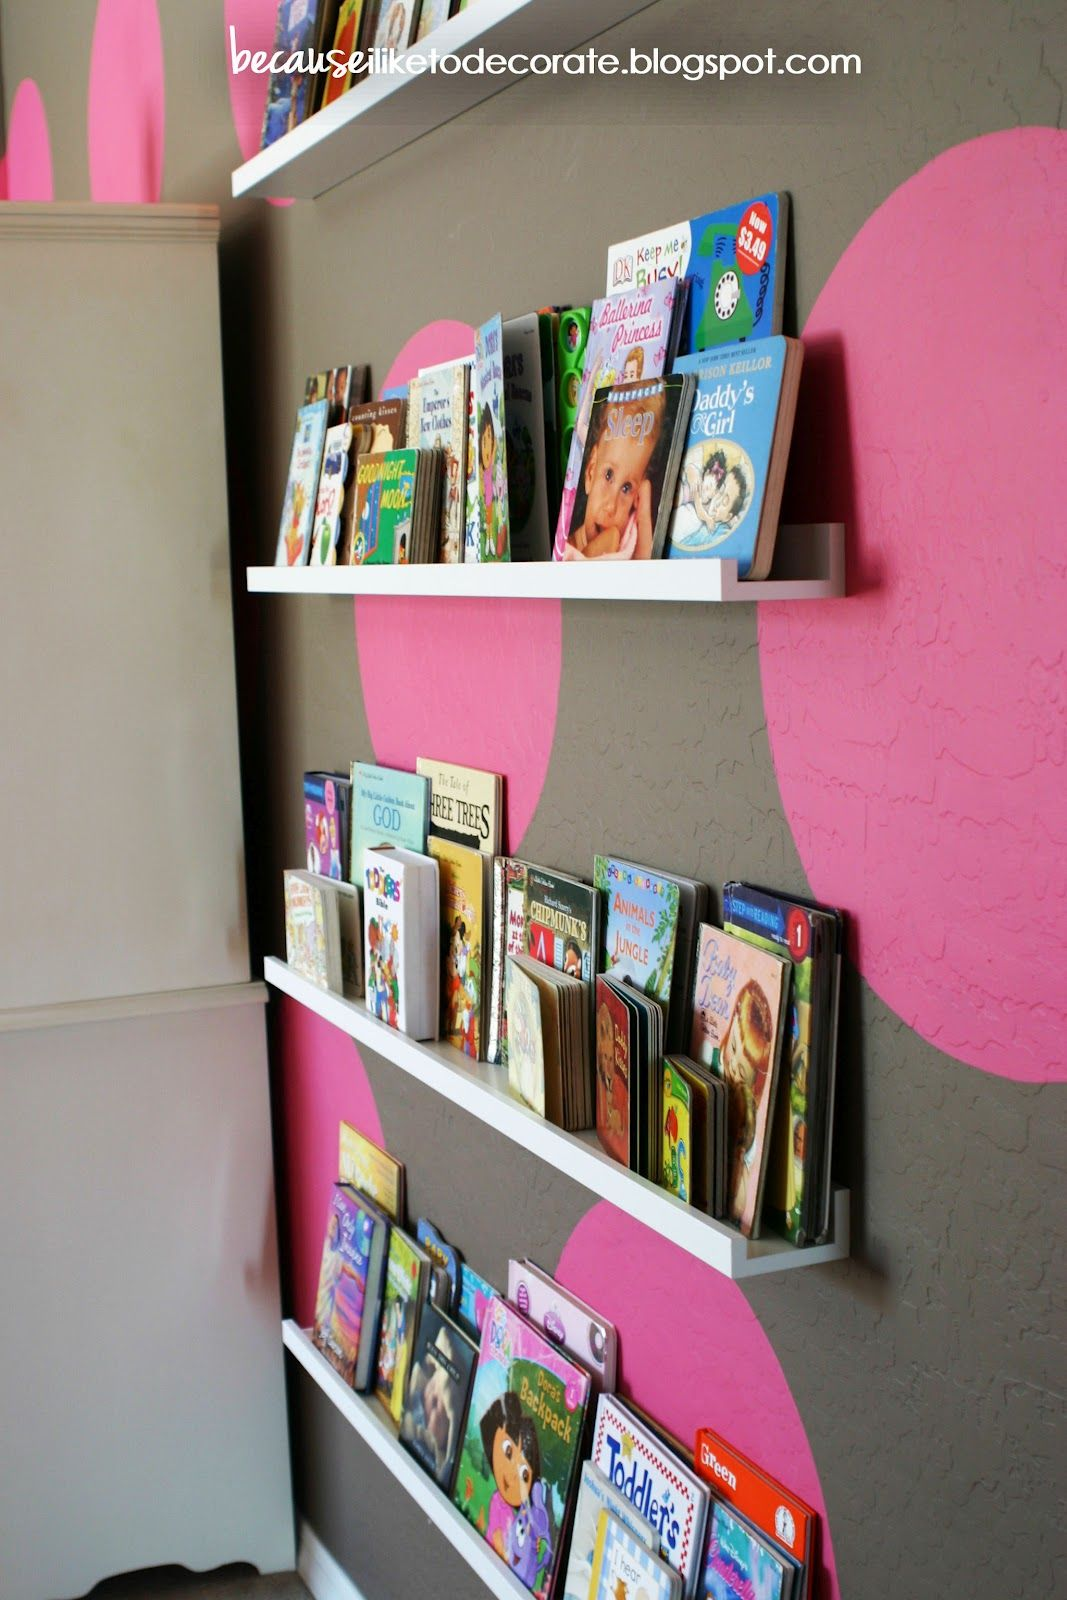 ikea picture frame ledges the girls room progress 14 toddler bookshelf wall becauseiliketodecorate - Toddler Bookshelves